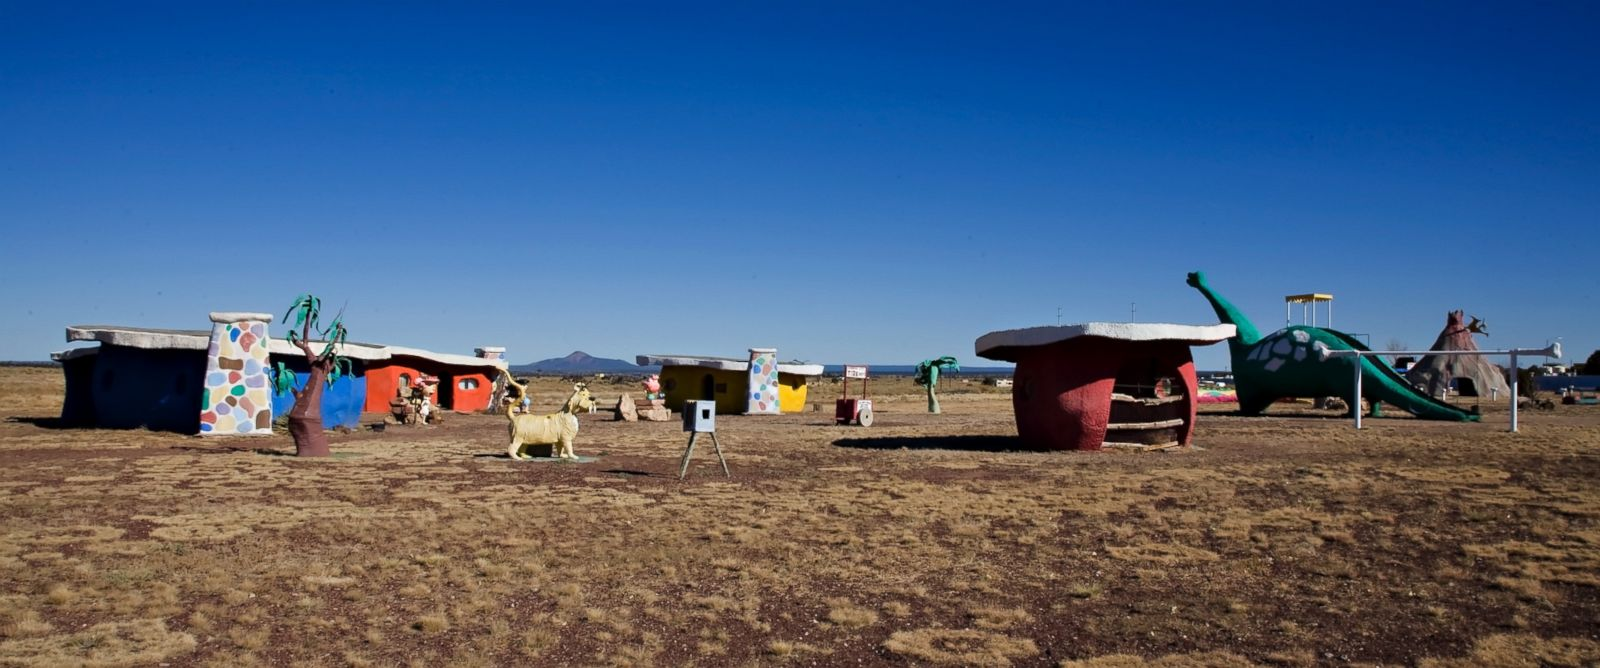 PHOTO: Bedrock City (Est 1972) has been a family business that has offered 40 years of family fun.